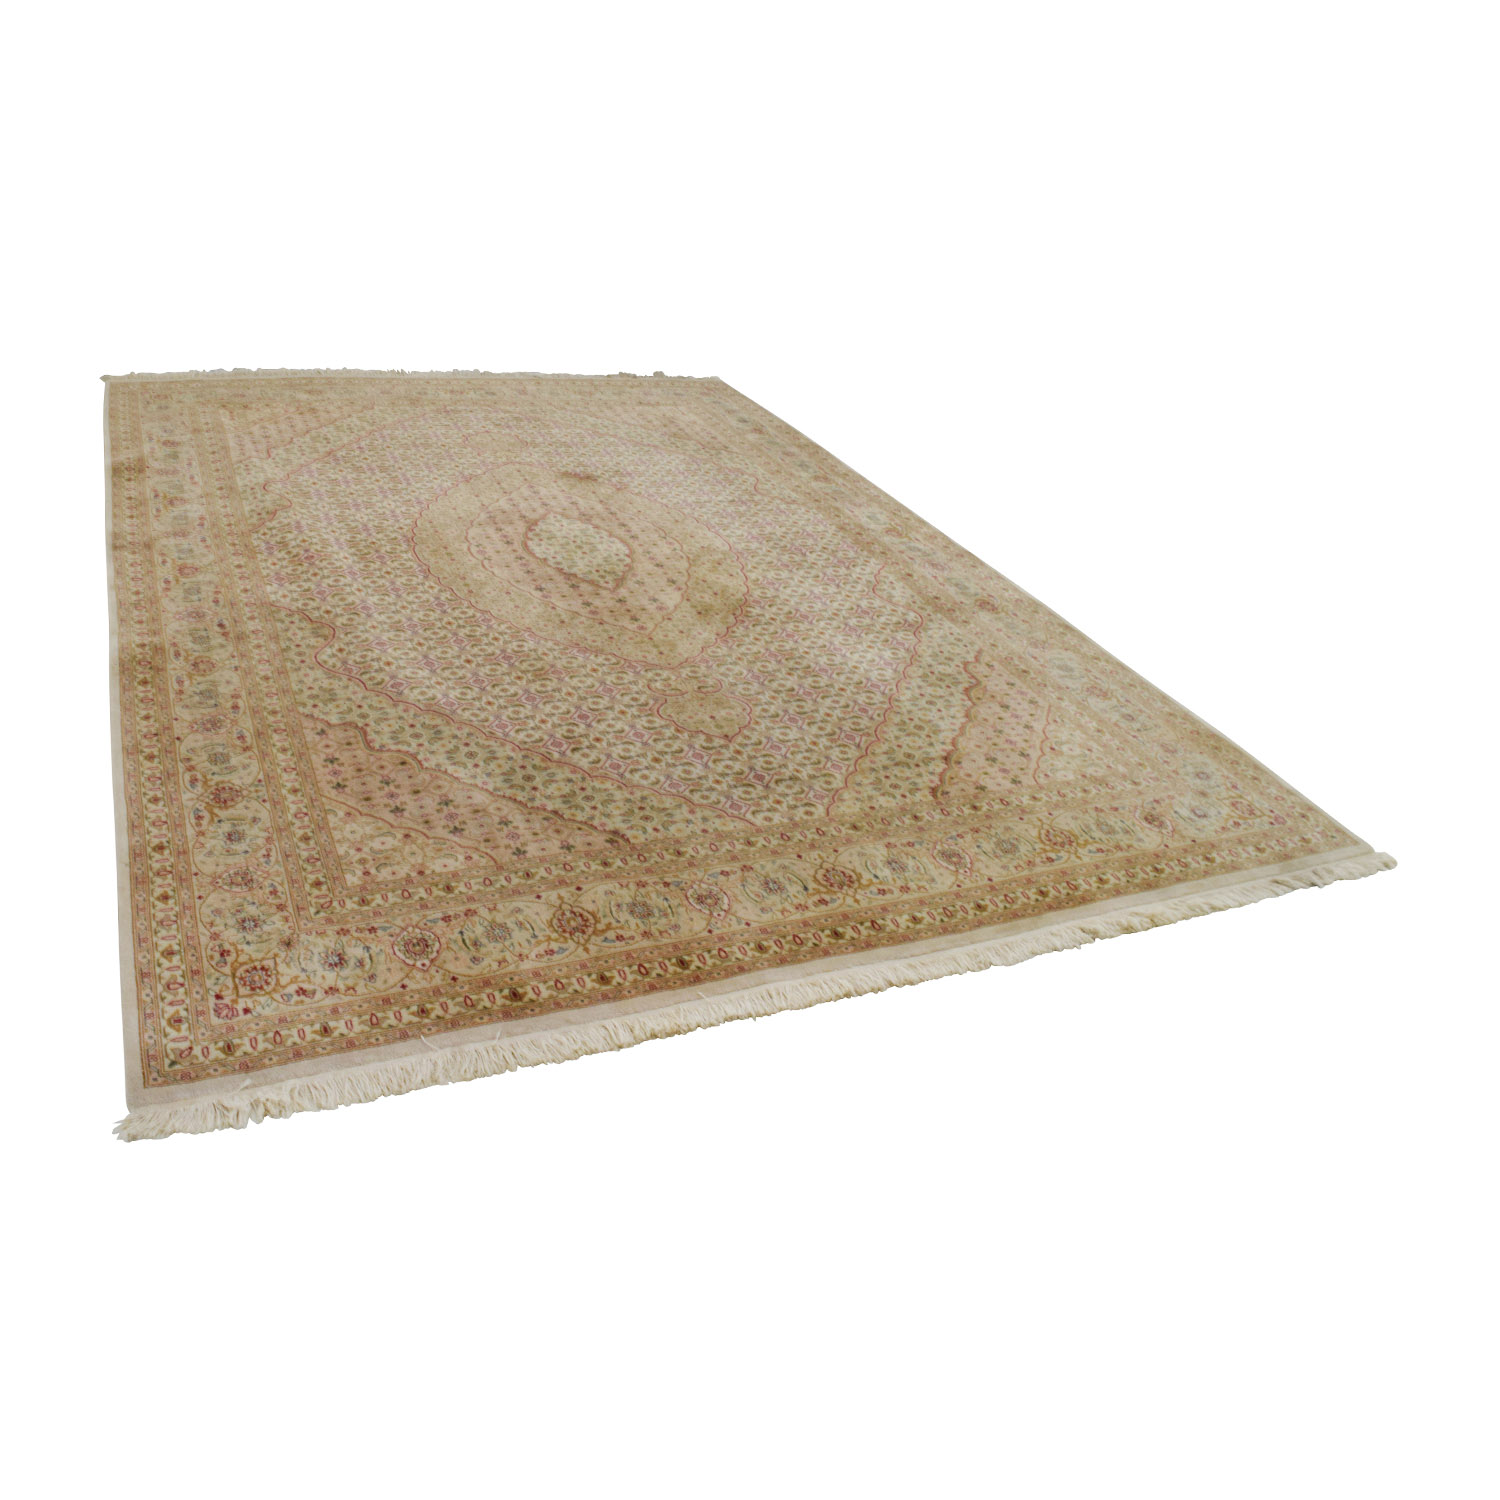 Macys Macys Beige Multi-Colored Rug used